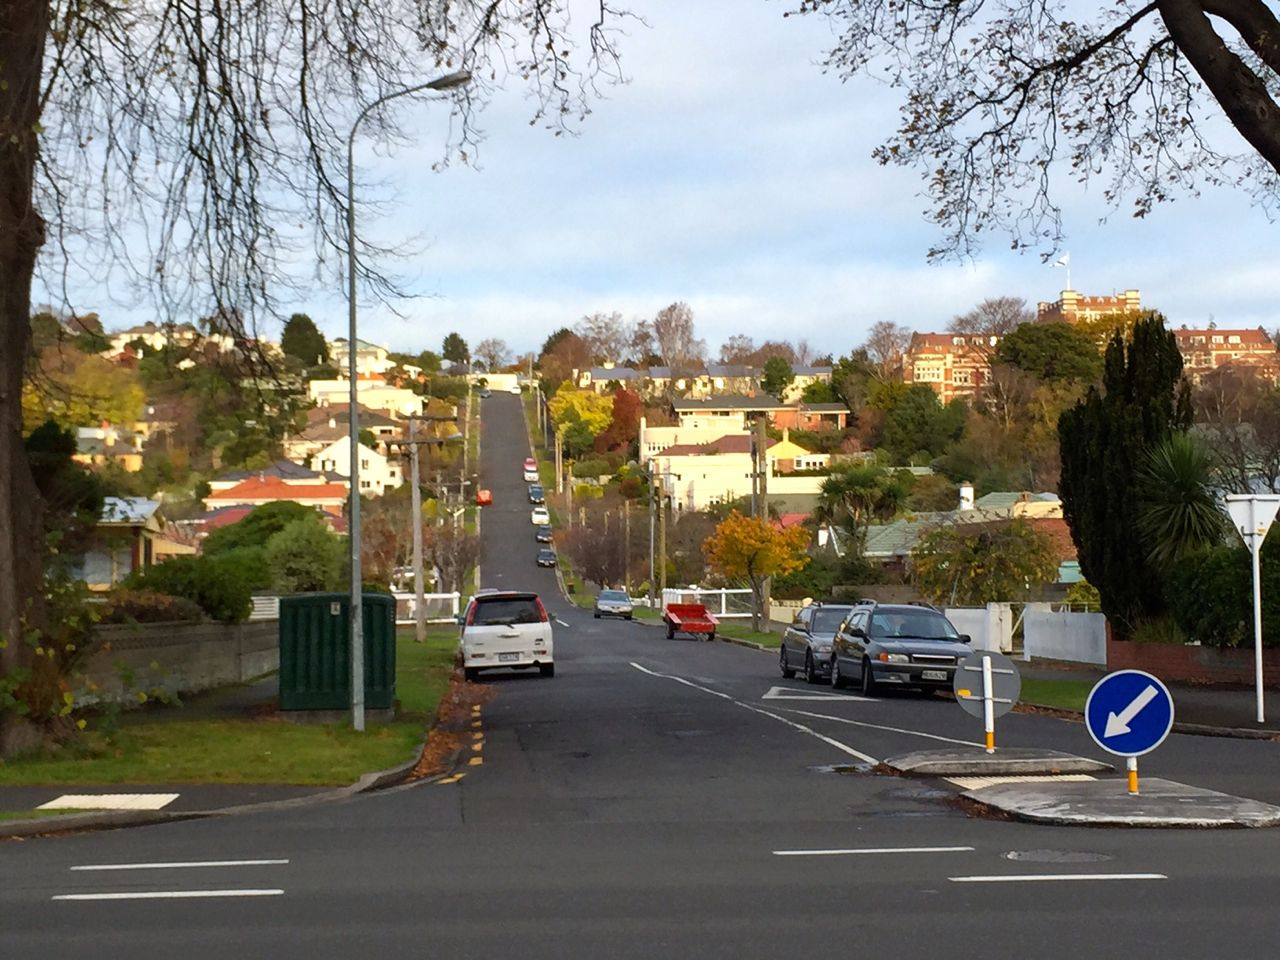 This is just down (or up) North Road from the 'steepest street in the world'. It looks very much like this one, promise.